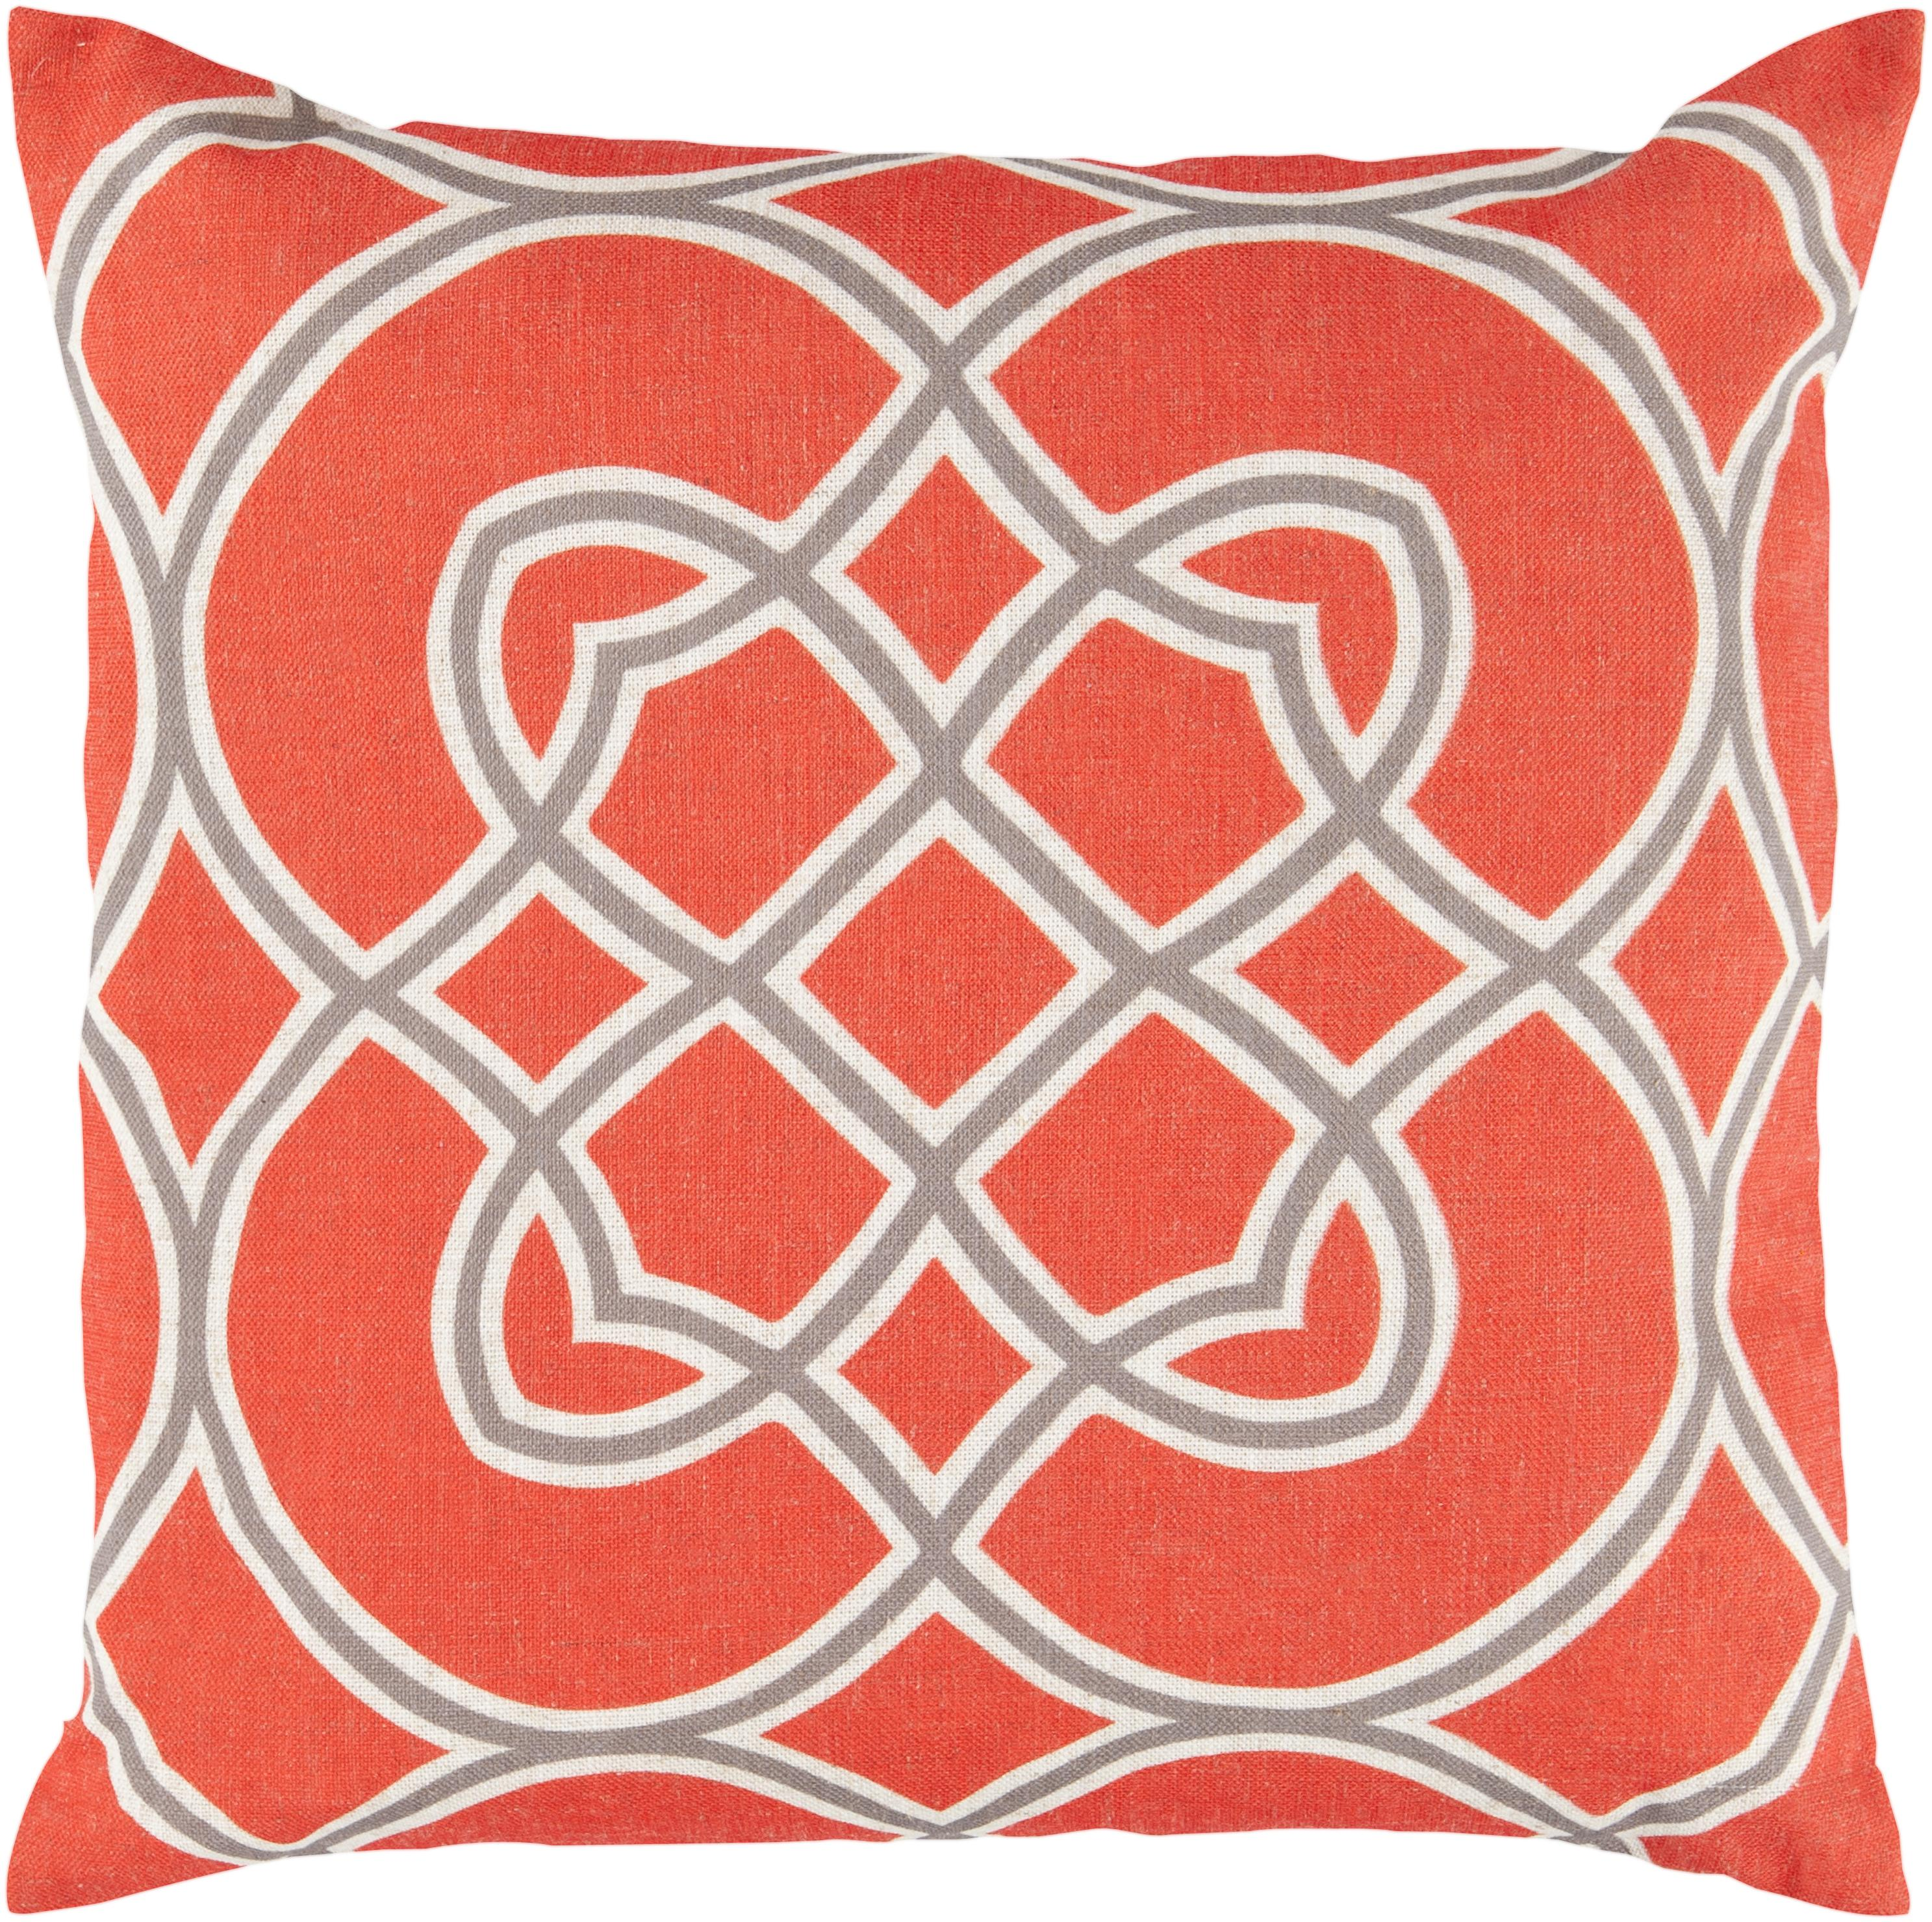 "Surya Rugs Pillows 22"" x 22"" Pillow - Item Number: FF020-2222P"